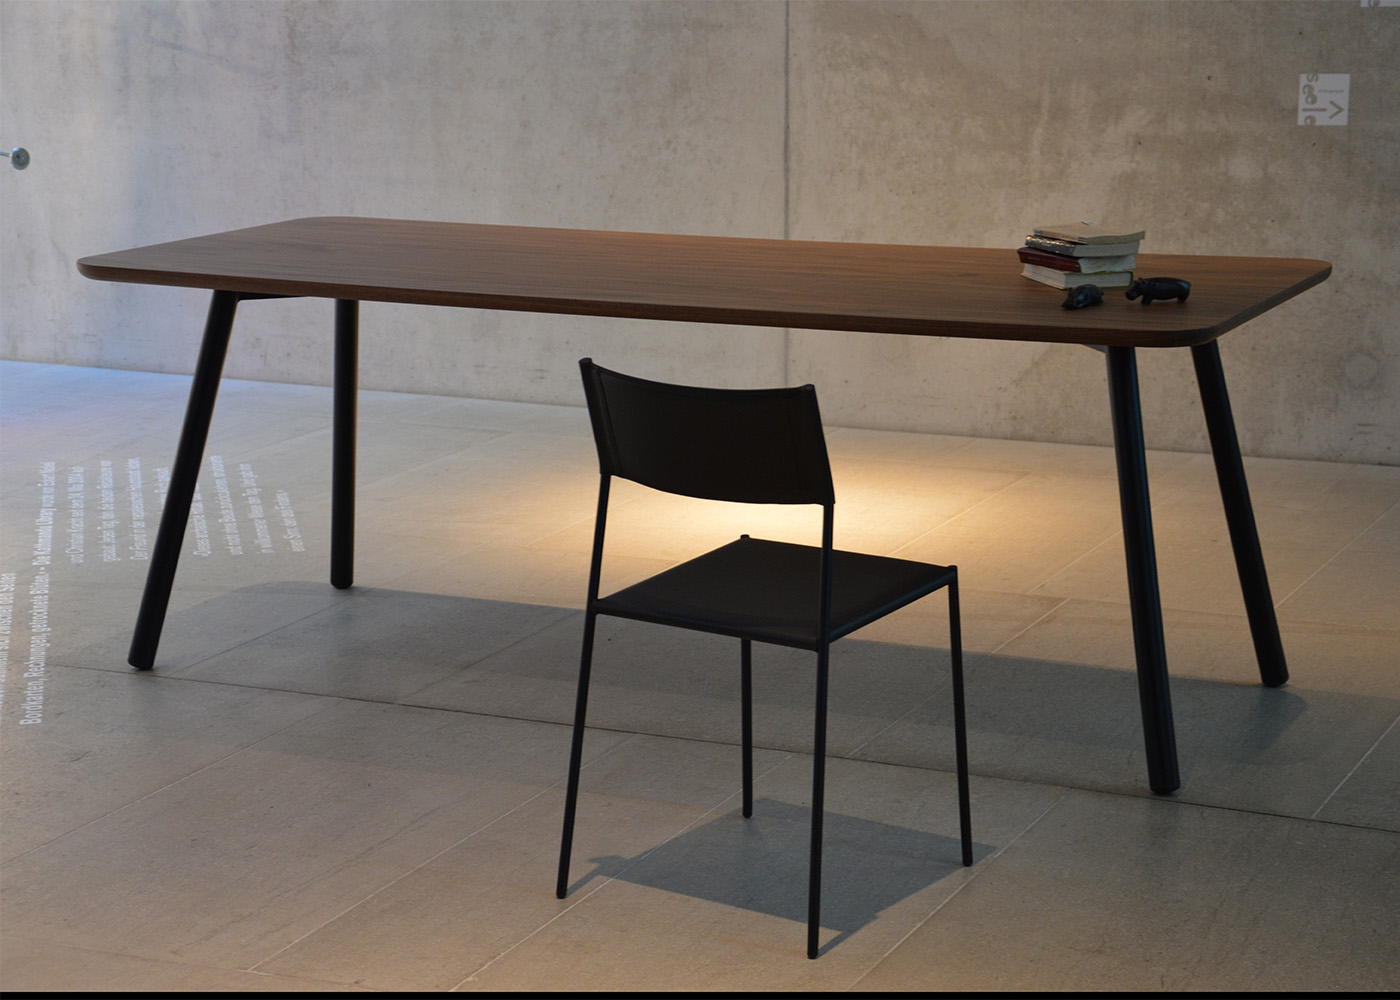 Table de repas en ch ne ou noyer au design sobre et for Table de repas design